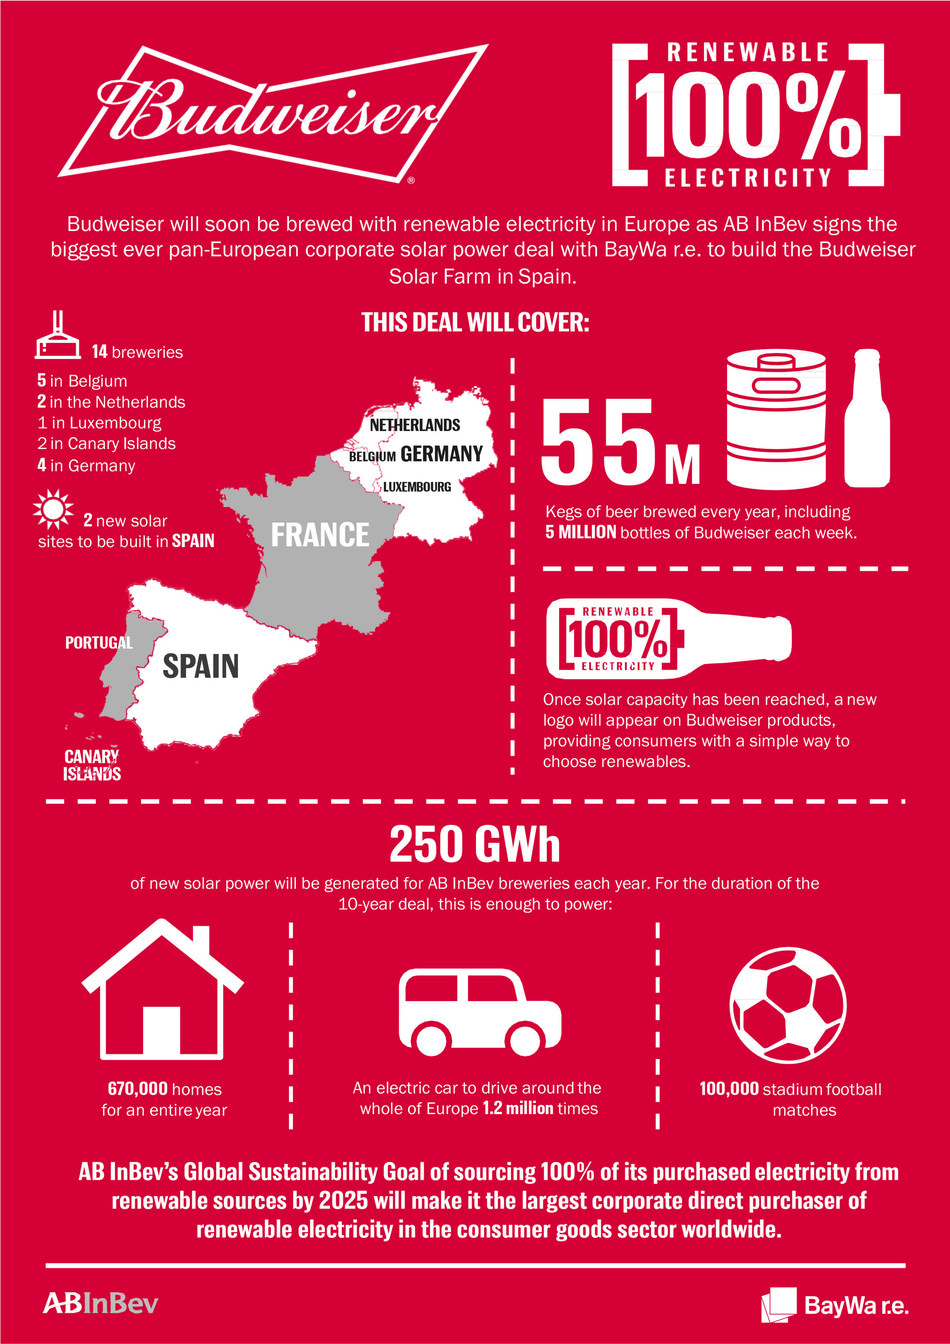 Biggest ever Pan-European corporate solar power deal  - the Budweiser Solar Farm in numbers